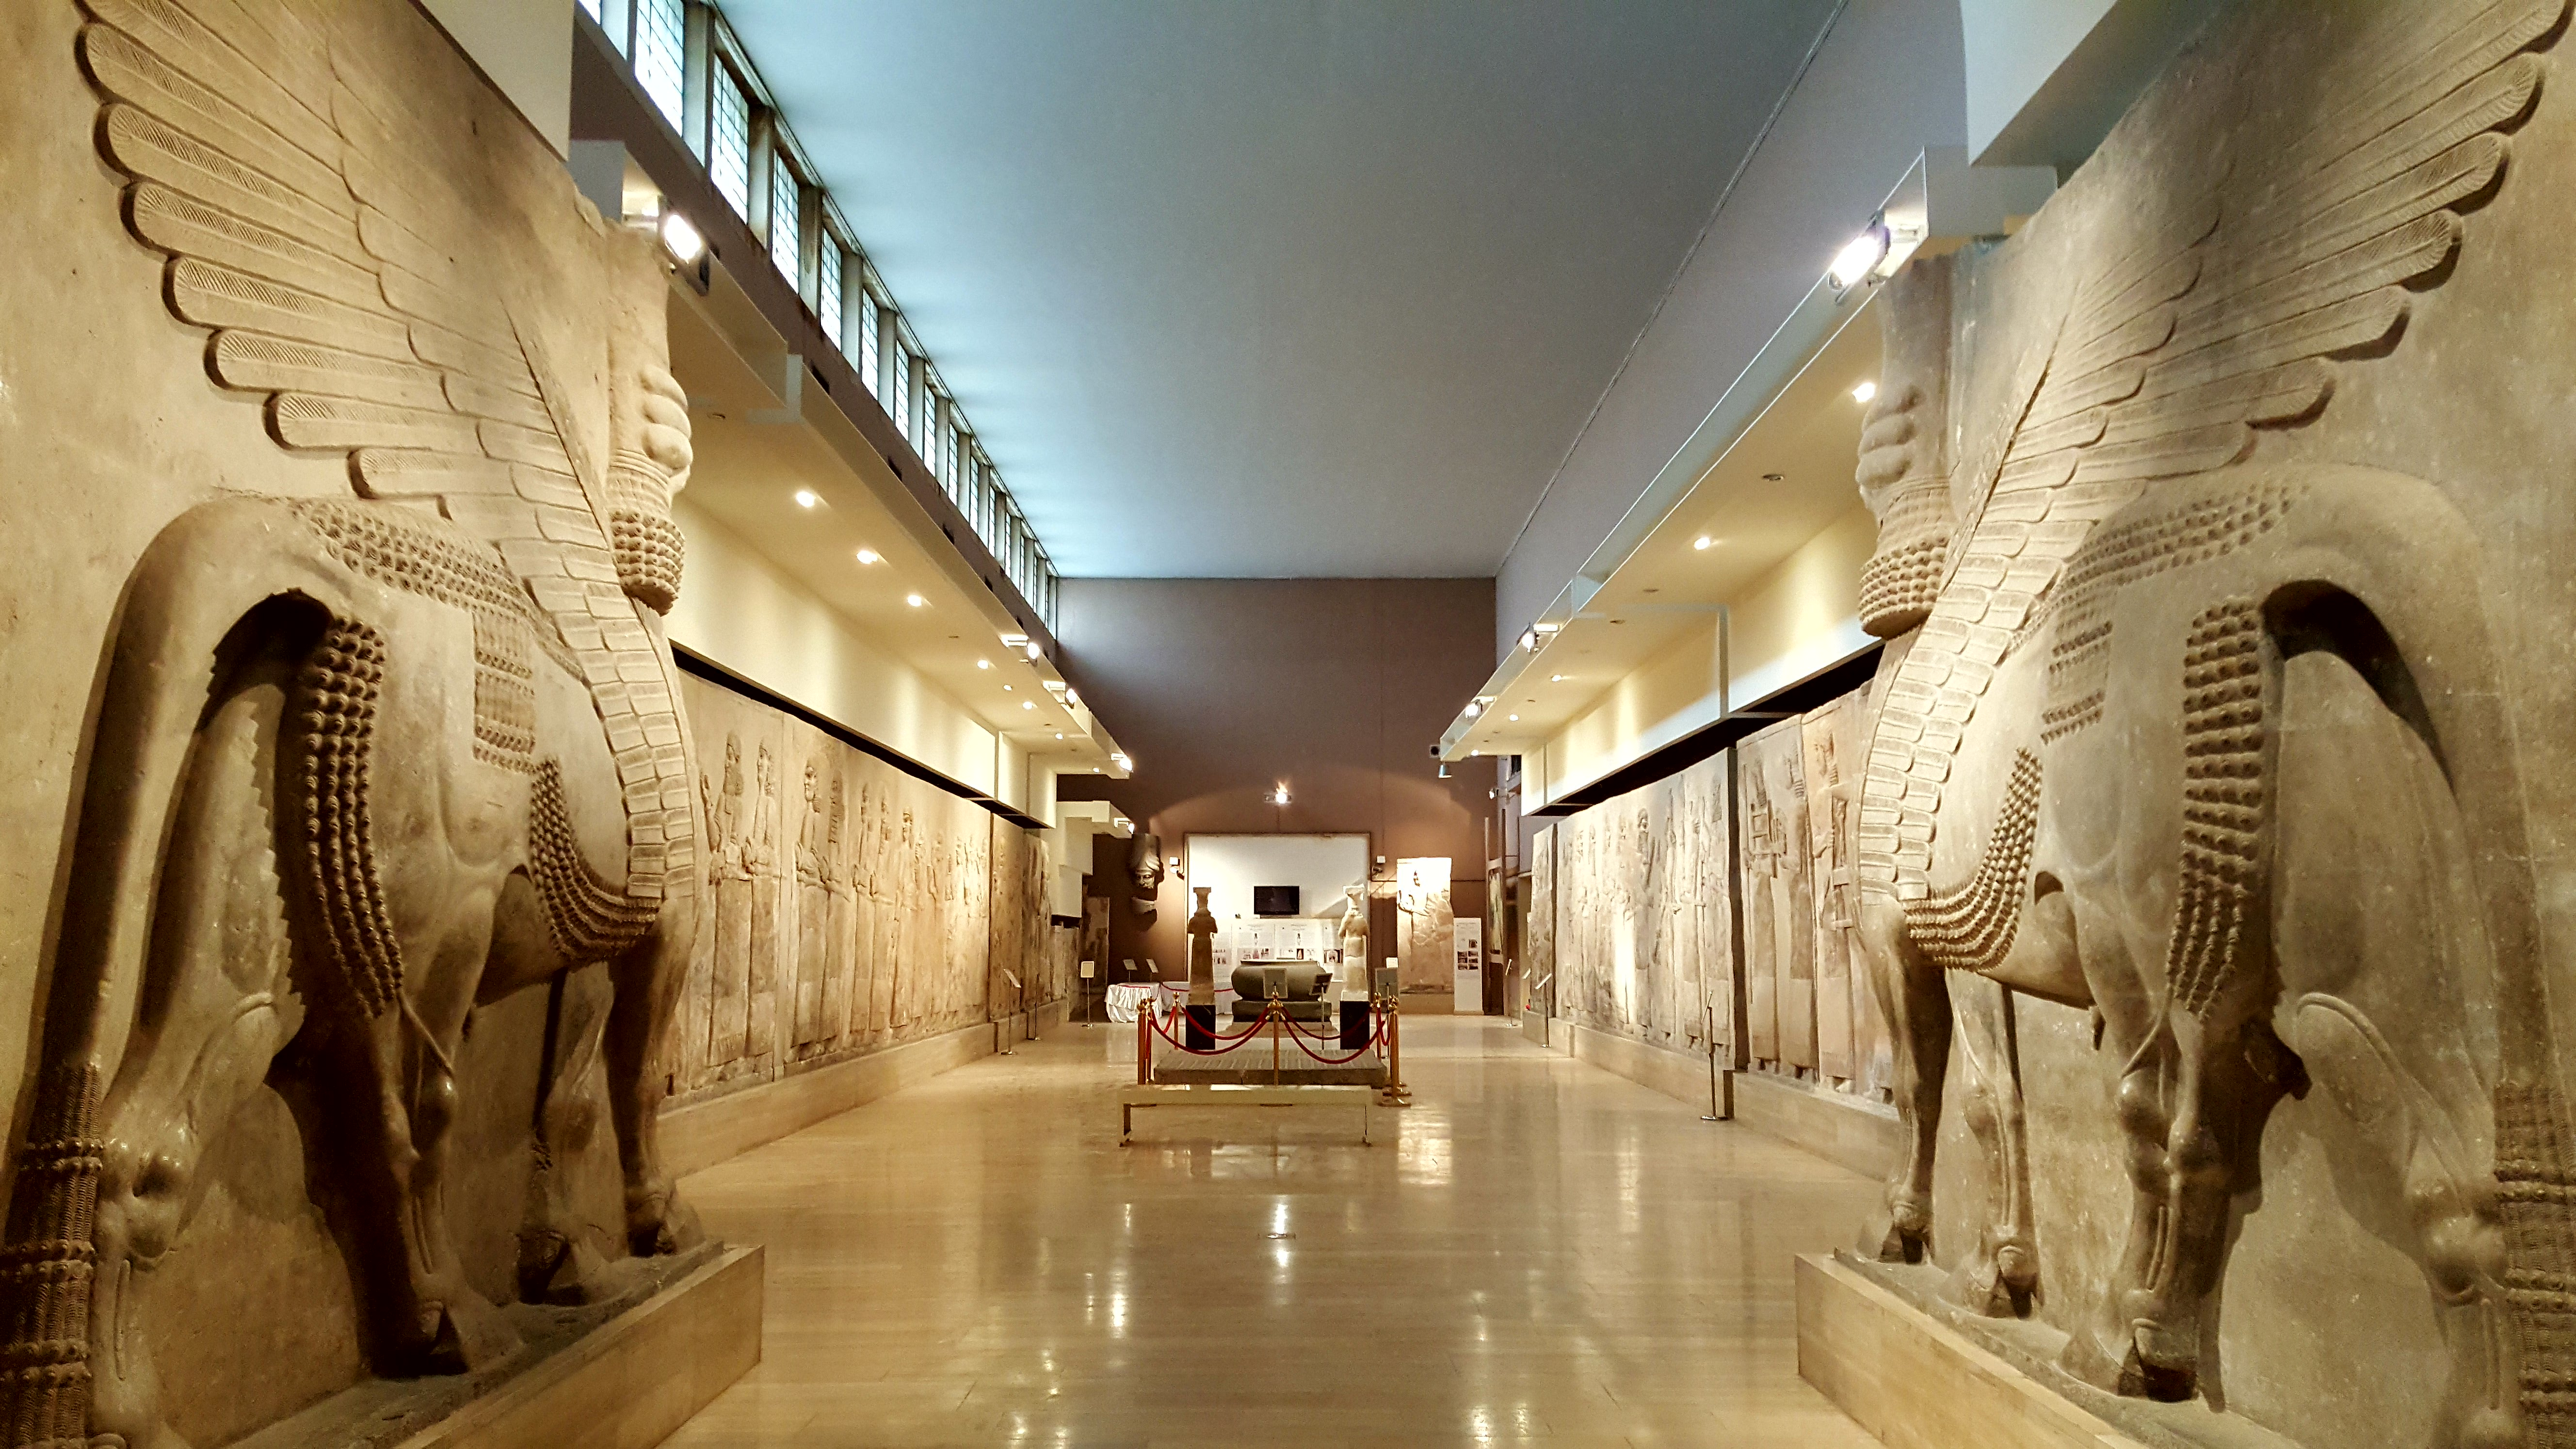 Inside hall in the Iraq Museum